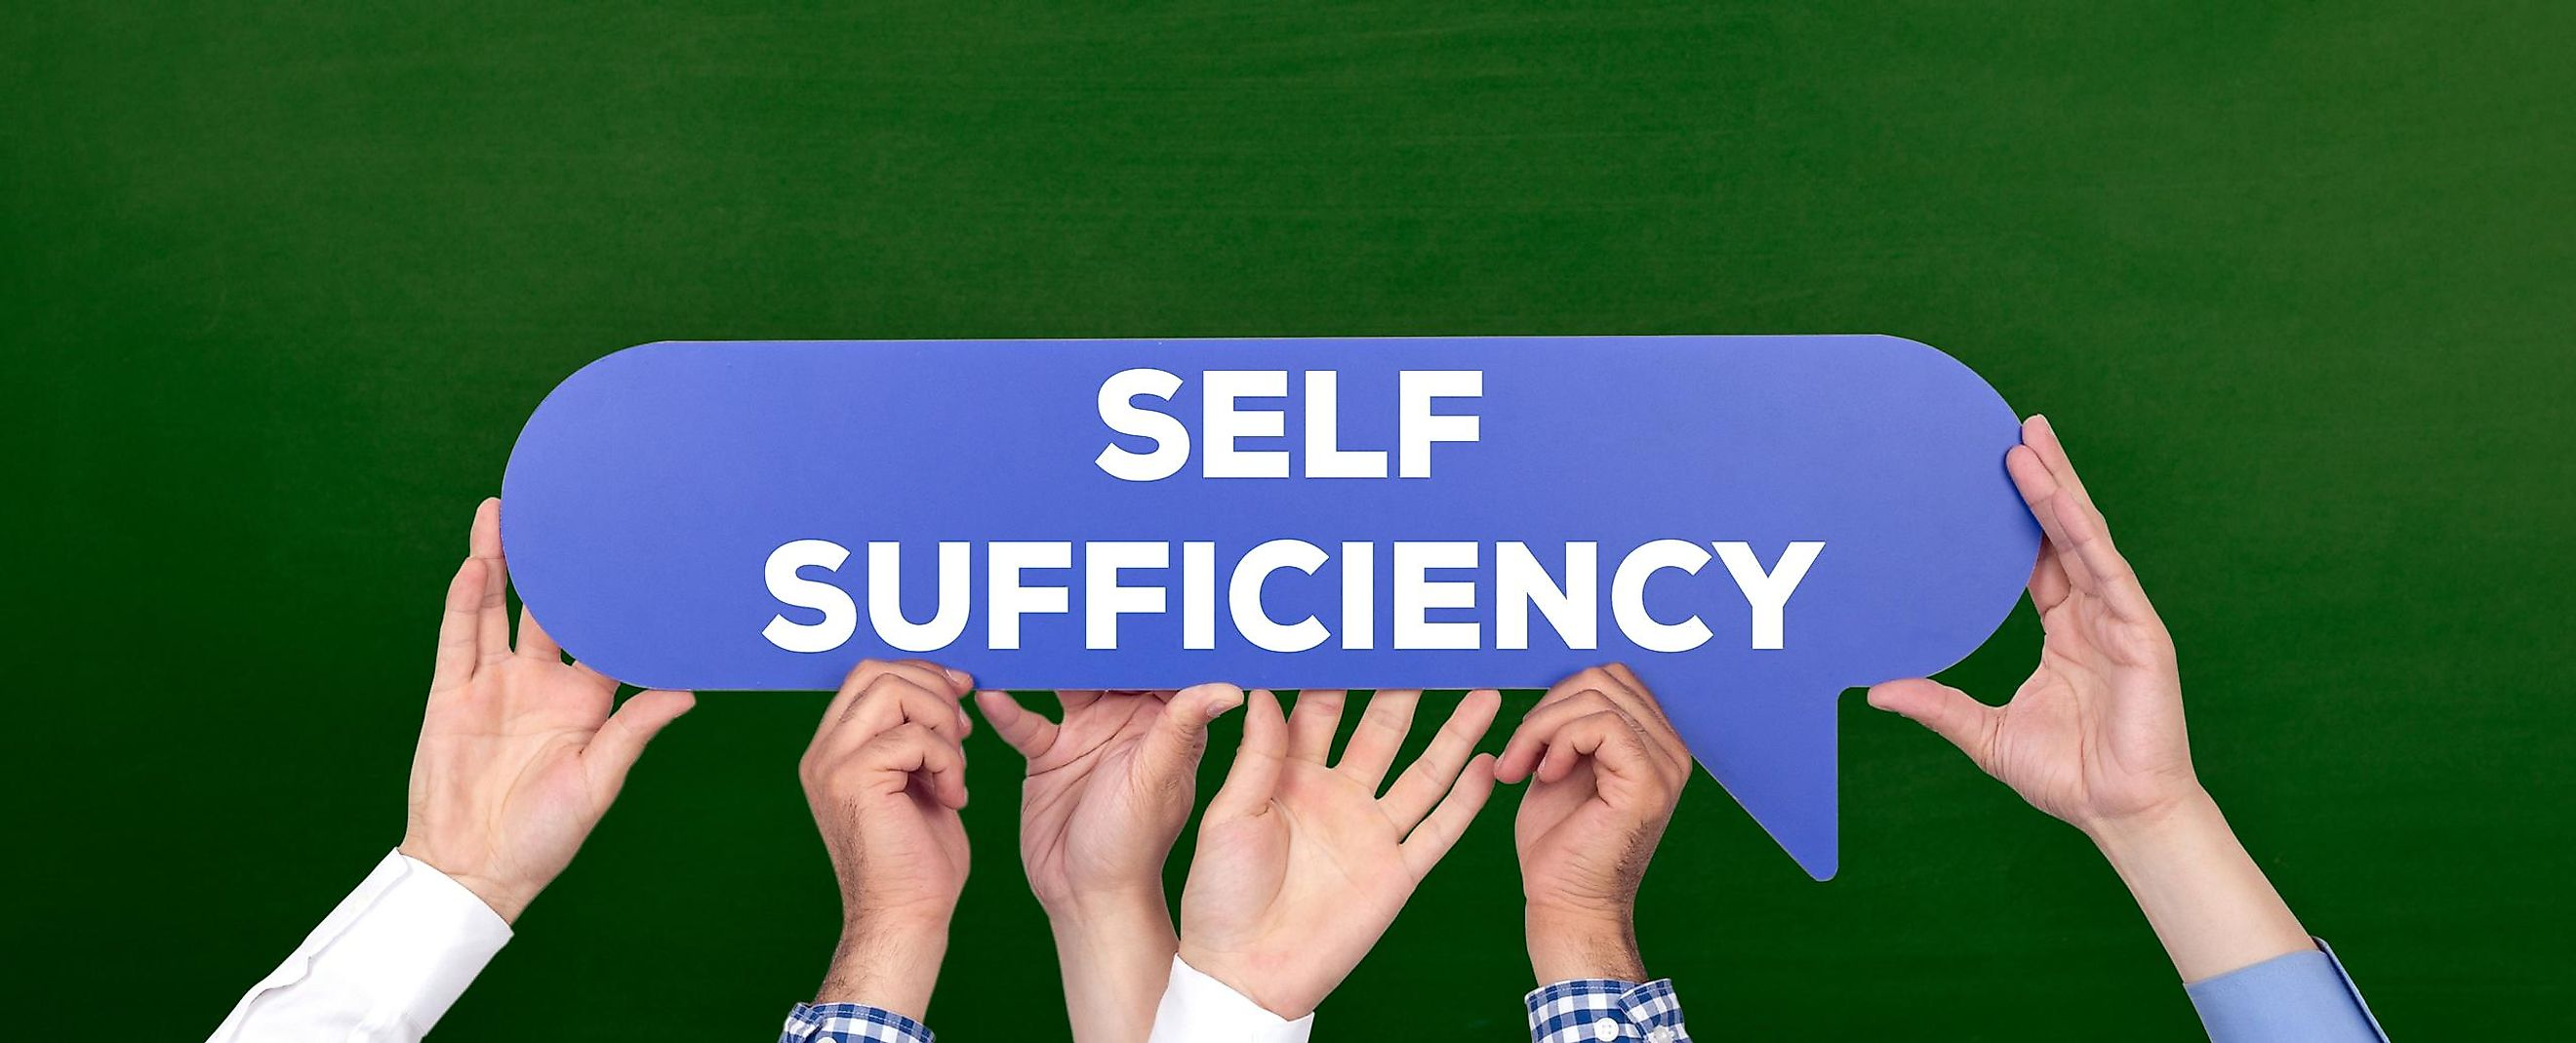 The self-sufficiency of a system can be viewed as a feature that allows a particular system to exist without the help of other systems.